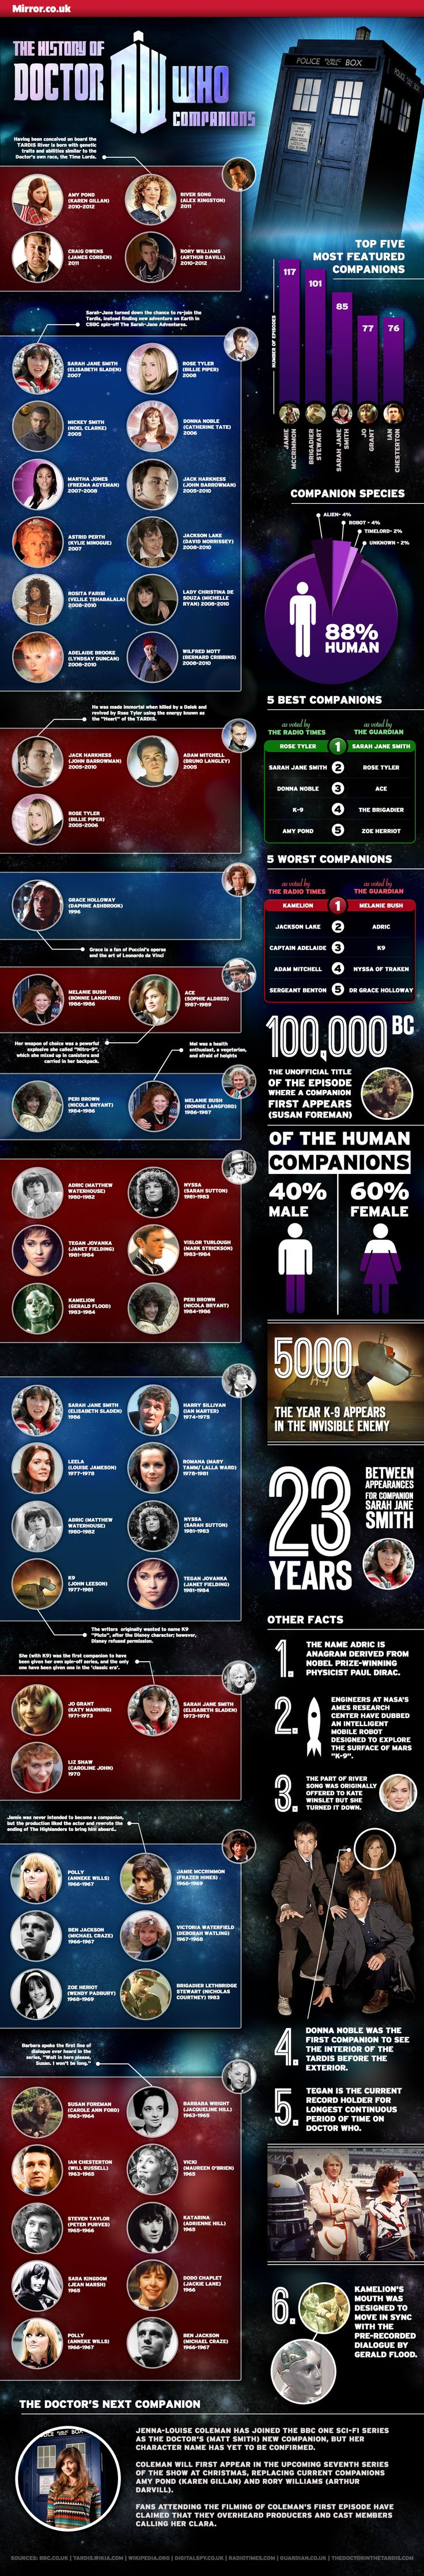 The History of Doctor Who Companions [infographic] #doctorwho #companions